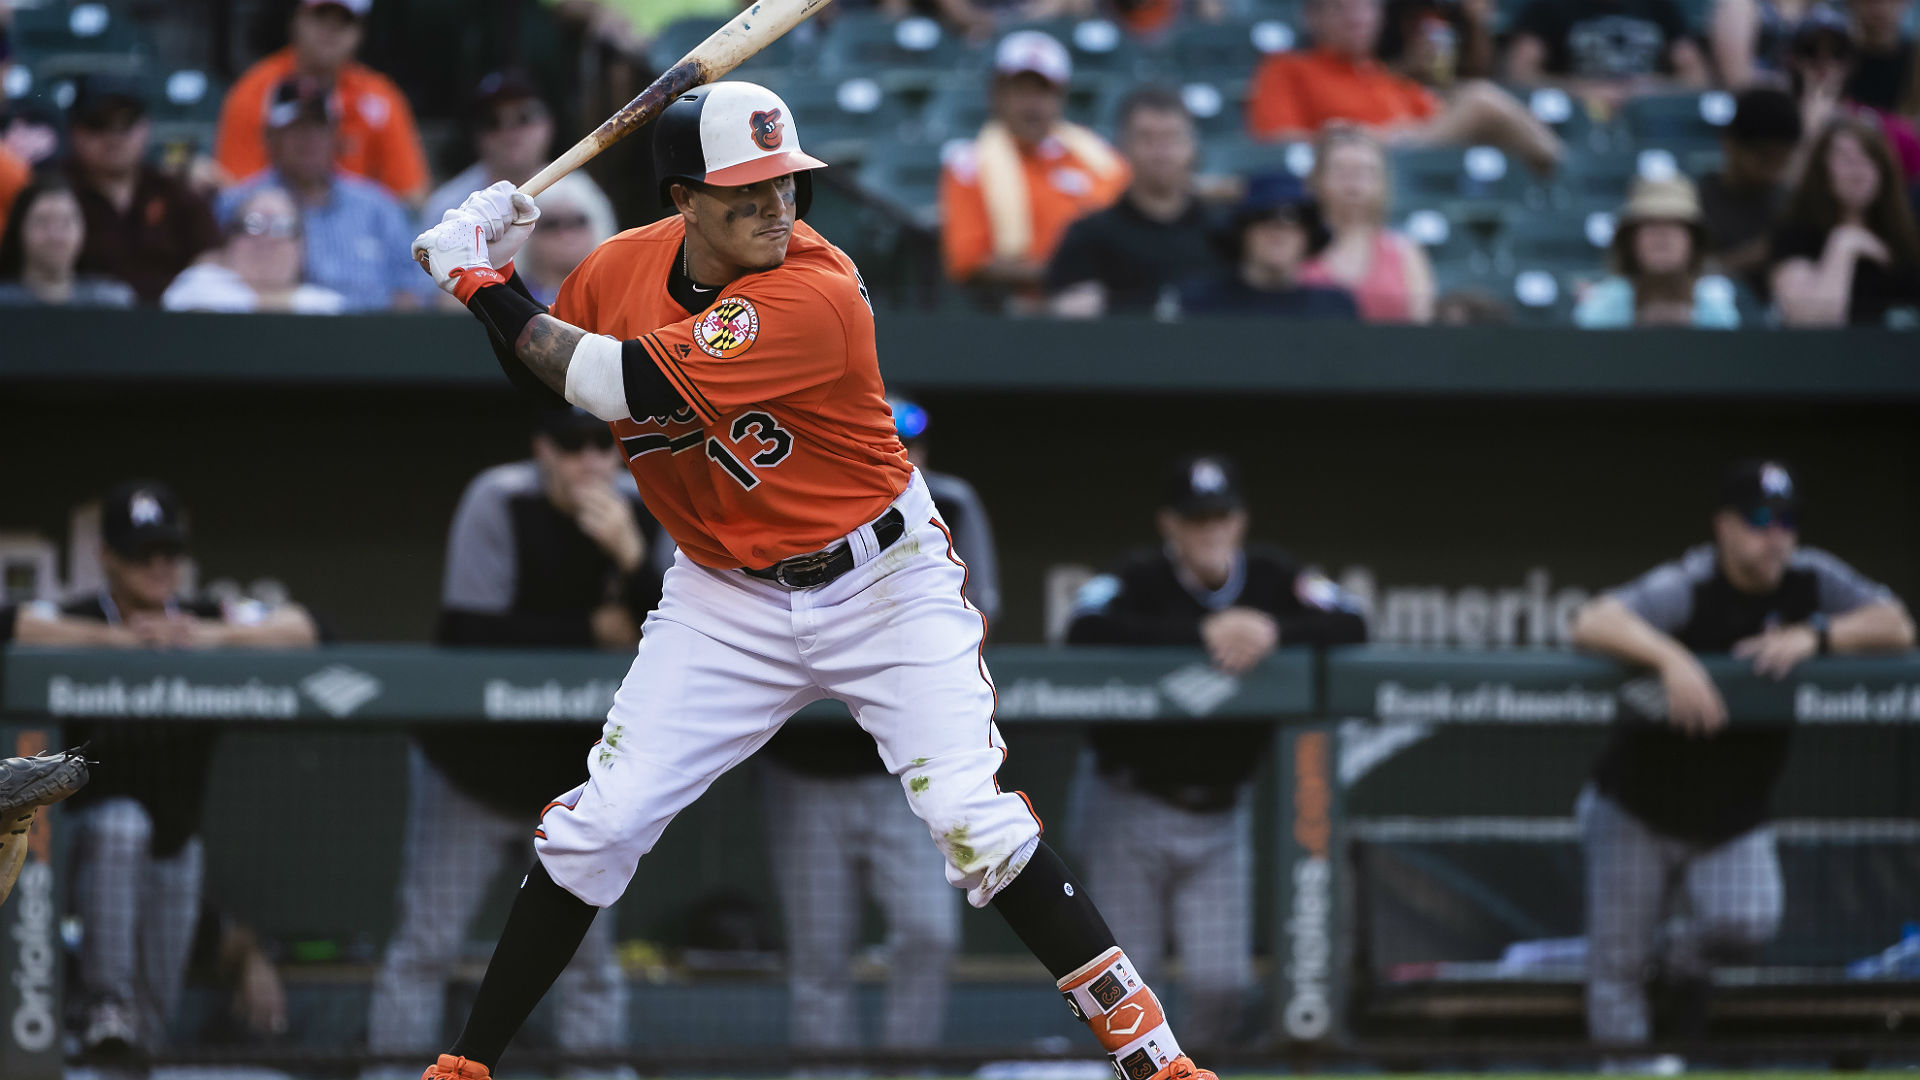 The Yankees are trying to make a push to acquire Manny Machado